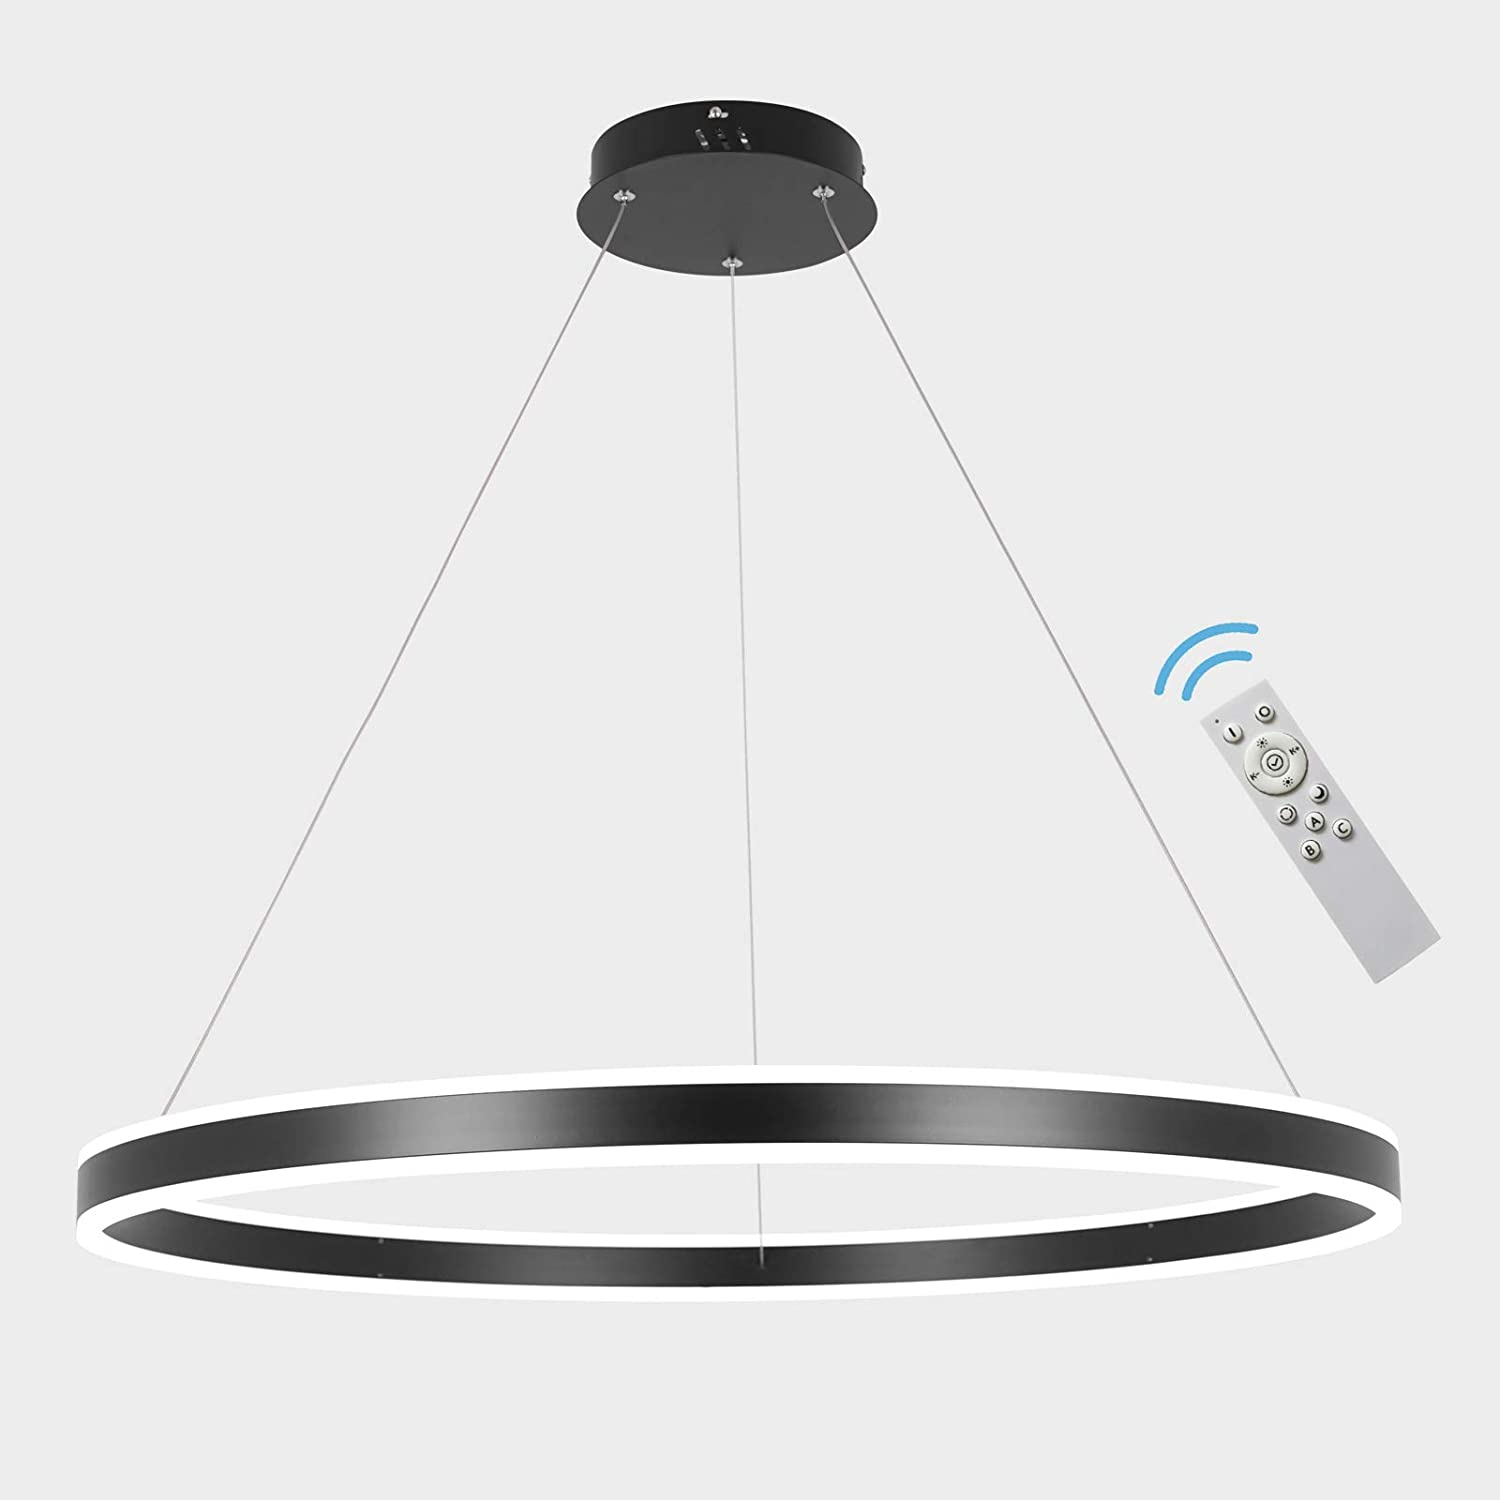 AKEELIGHTING lowest price Excellent Contemporary Led Chandeliers Black Dimmable Pendant